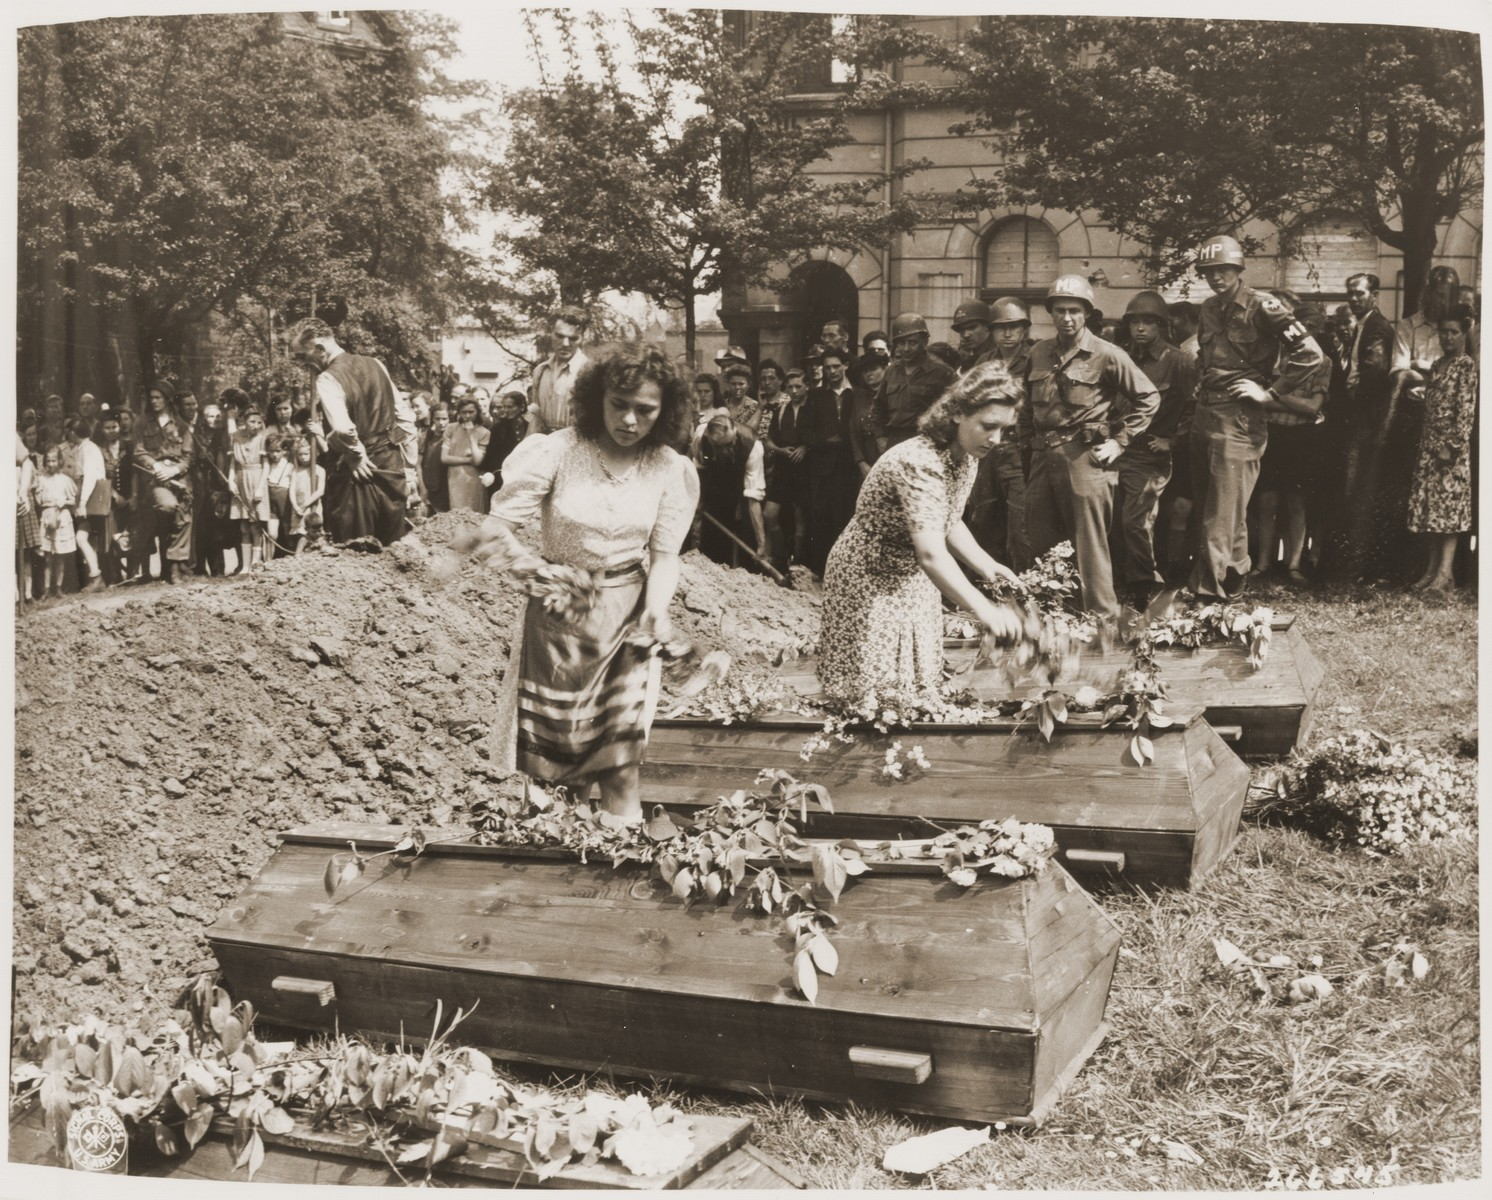 German girls place flowers on the coffins of seven Russian victims hung by their captors in Muehlheim.   The bodies were recovered by German civilians under the supervision of U.S. troops of the 194th Gilder Regiment, 17th Airborne Division.  The townspeople of Muehlheim were forced to attend funeral services for the victims.